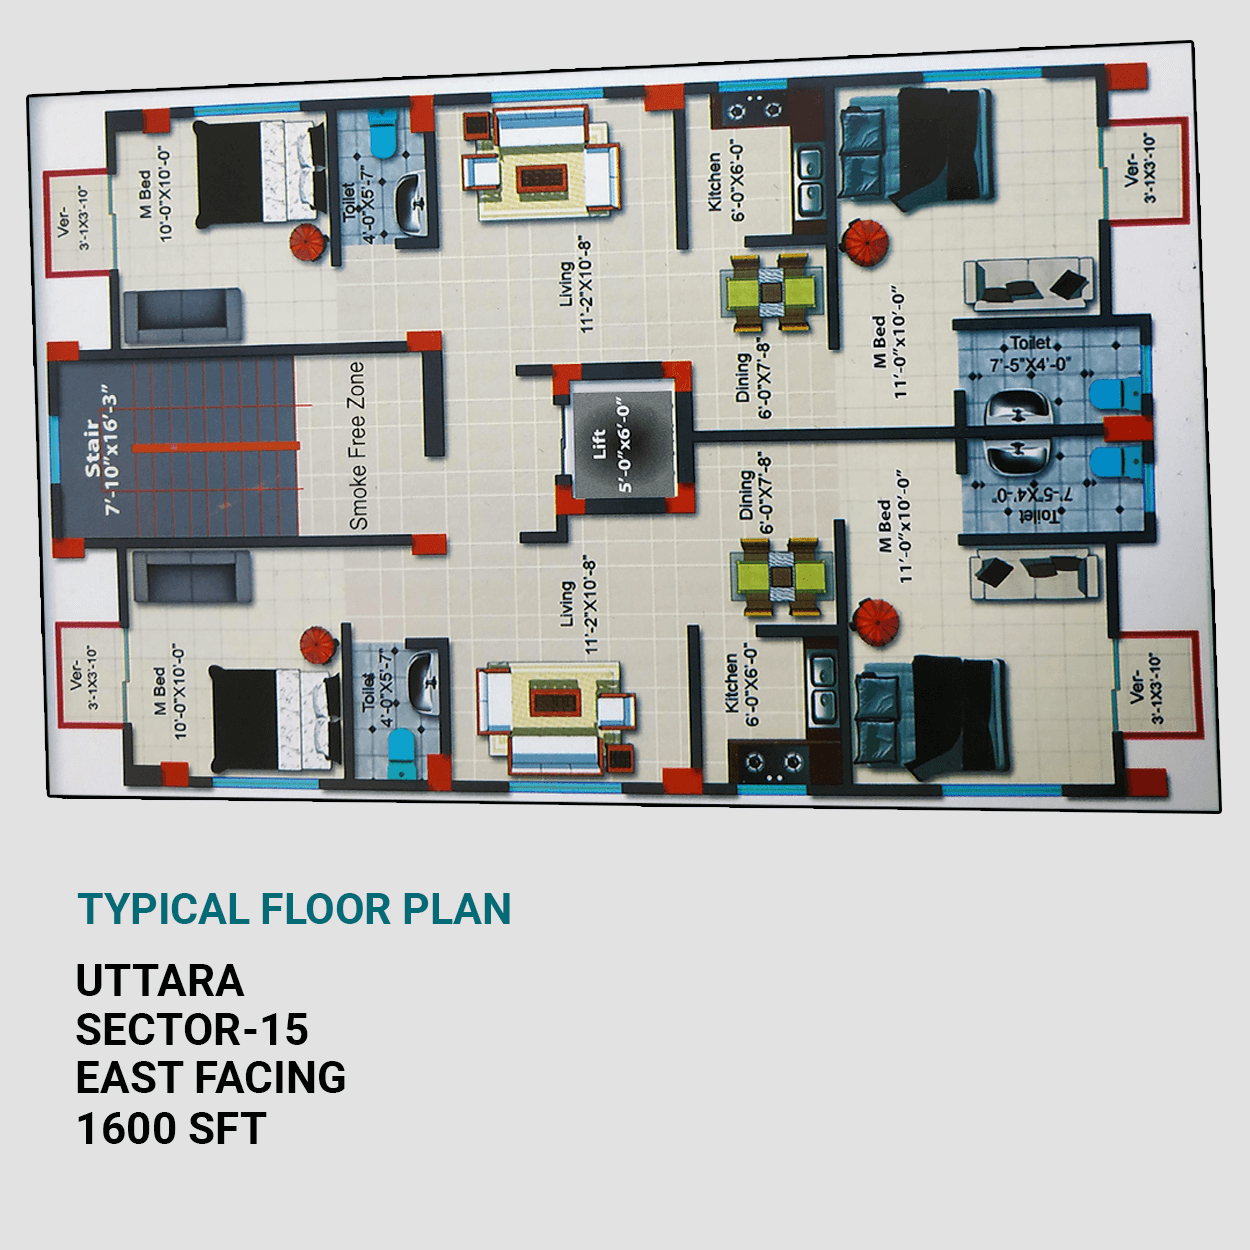 Exclusive 1600 sft Flat For Sale at Uttara